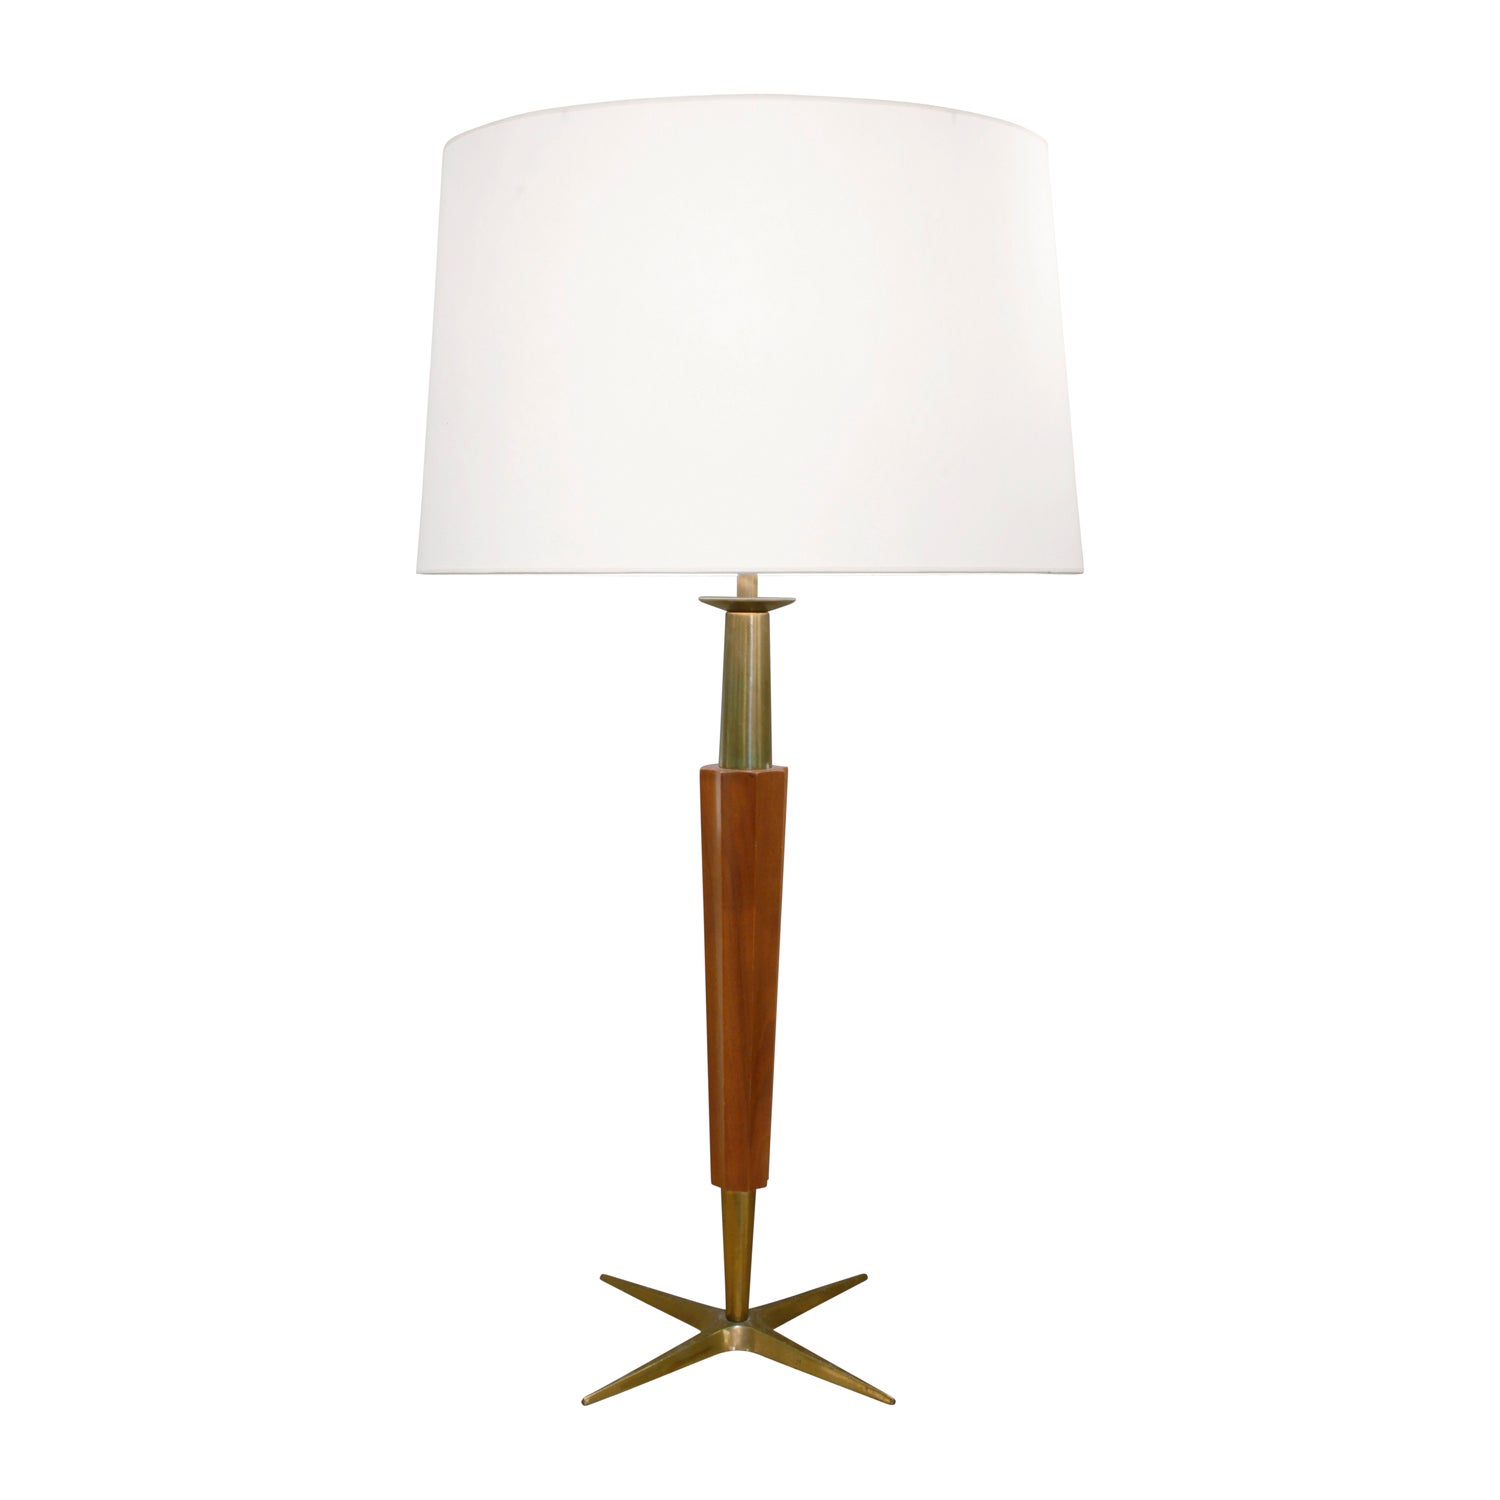 Stiffel Fluted Walnut and Brass Table Lamp, 1950s